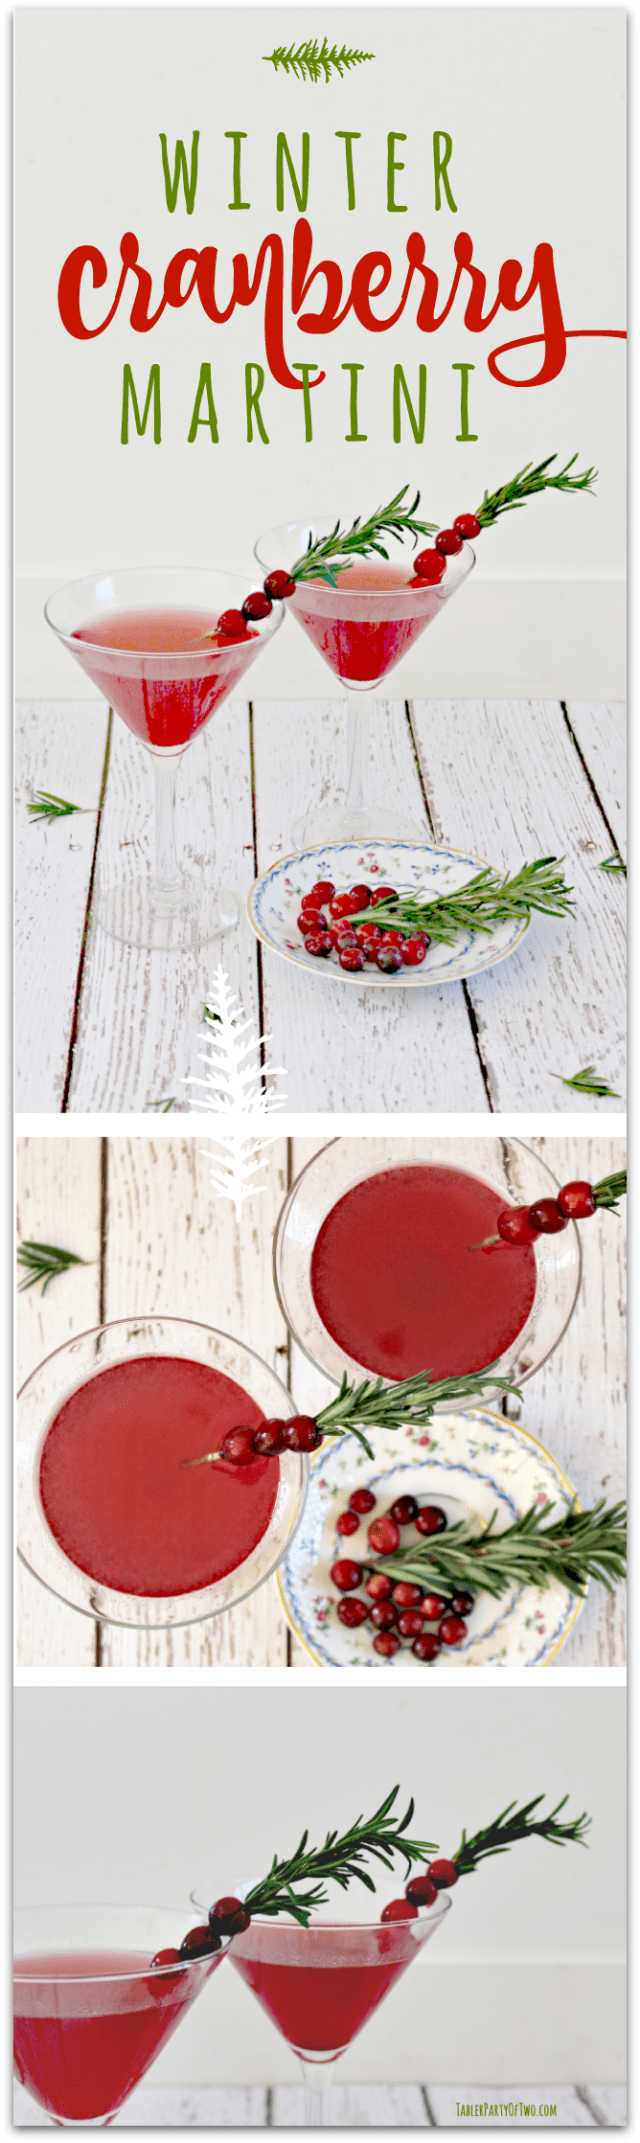 Winter-Cranberry-Martini-2Pinterest